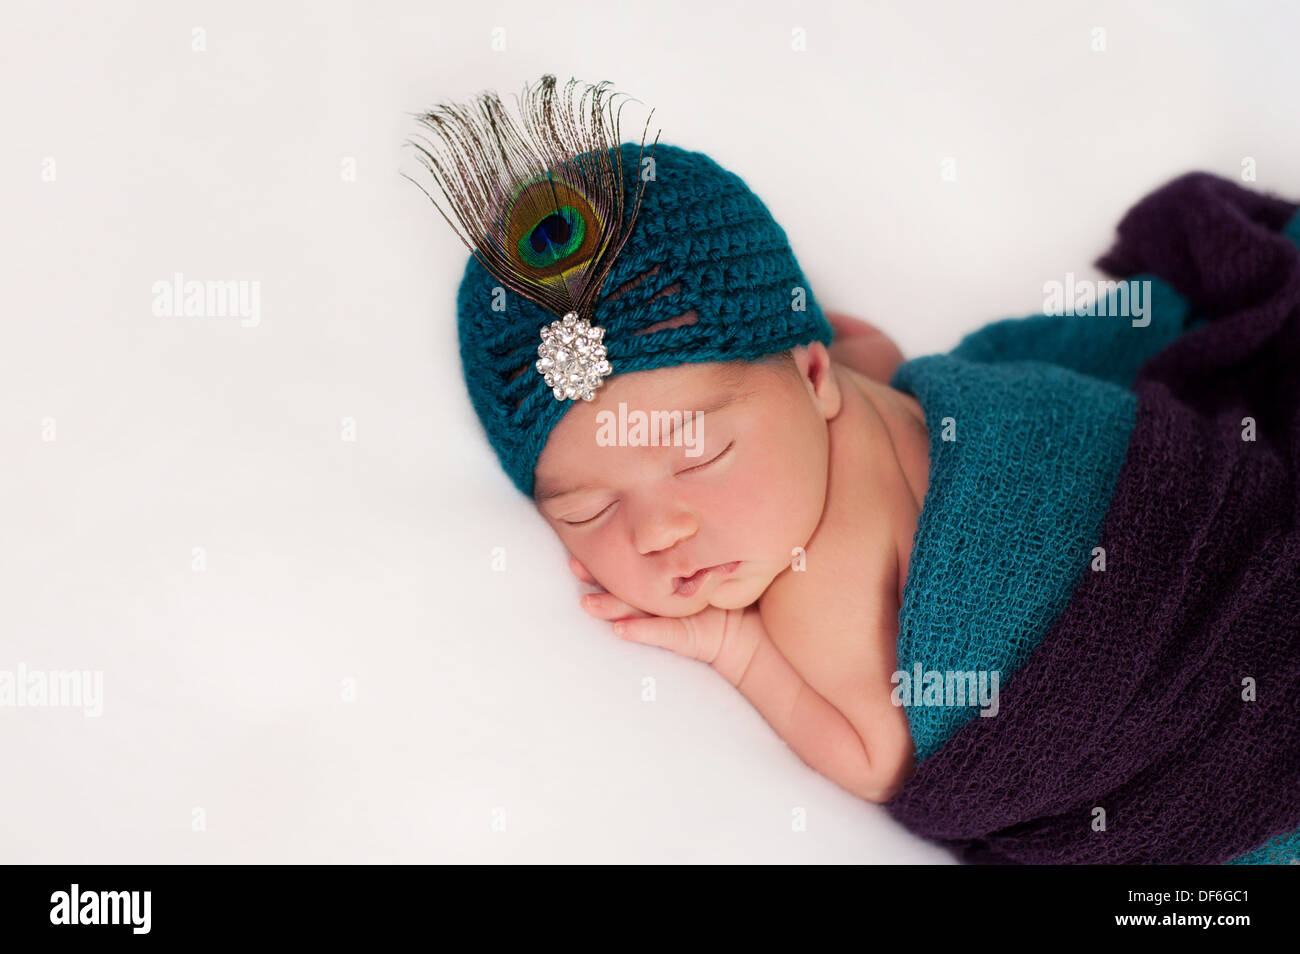 Newborn Baby Girl Wearing a Peacock Costume - Stock Image